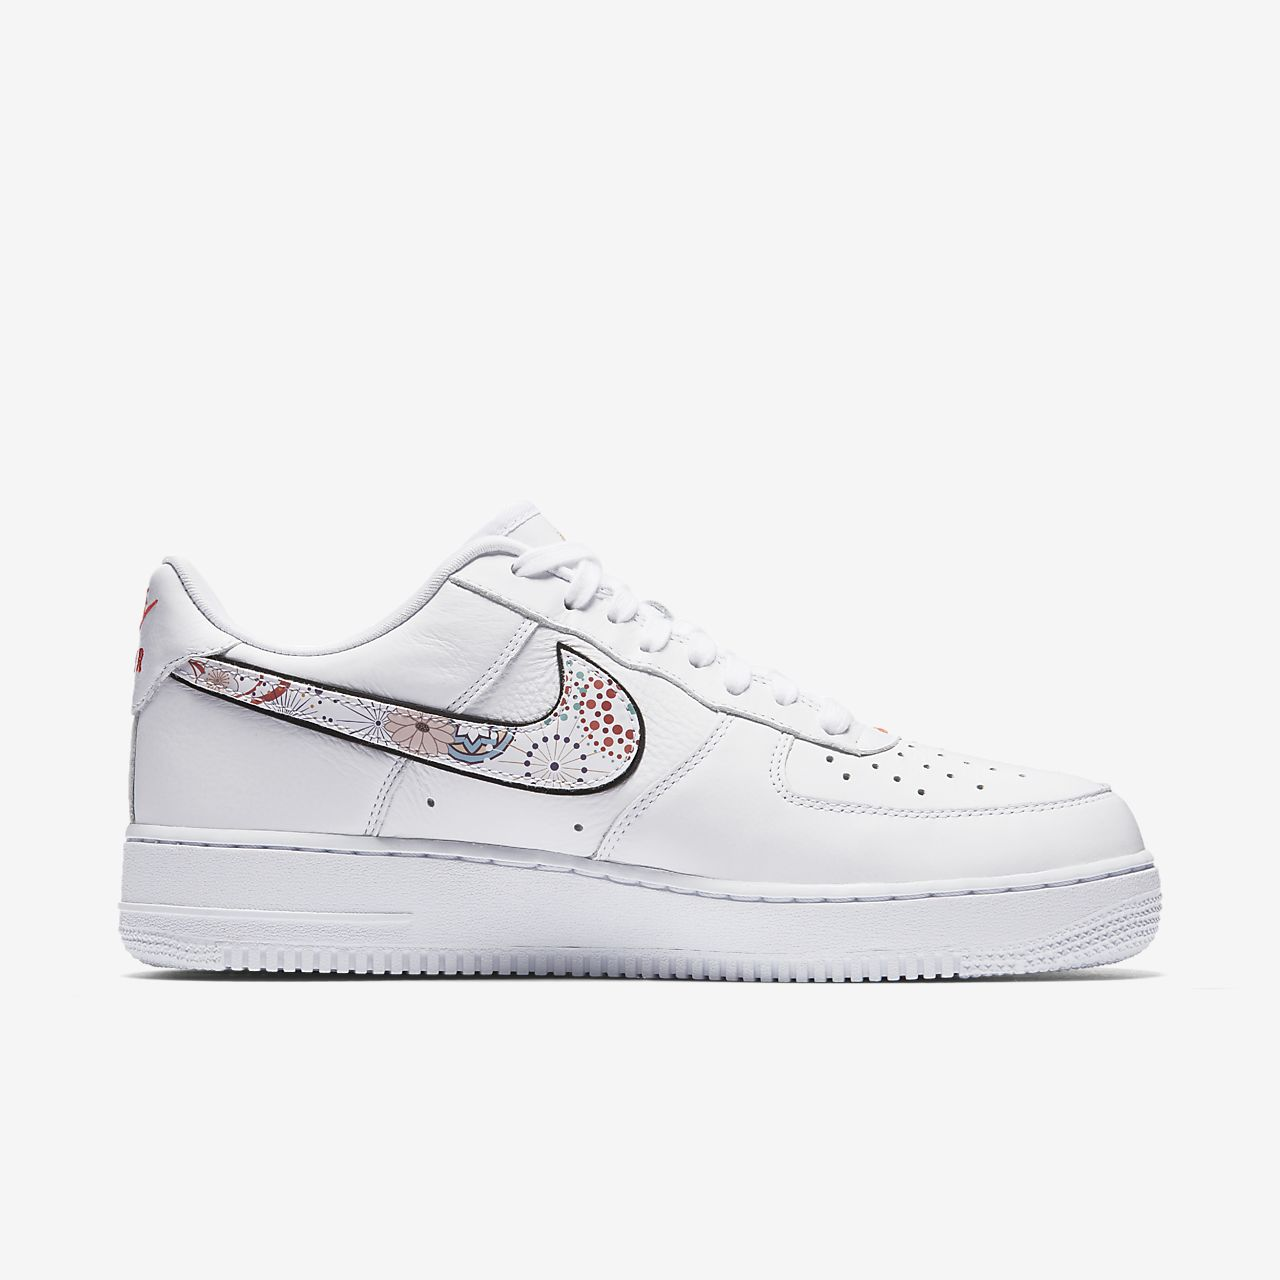 ... Nike Air Force 1 '07 LNY Men's Shoe